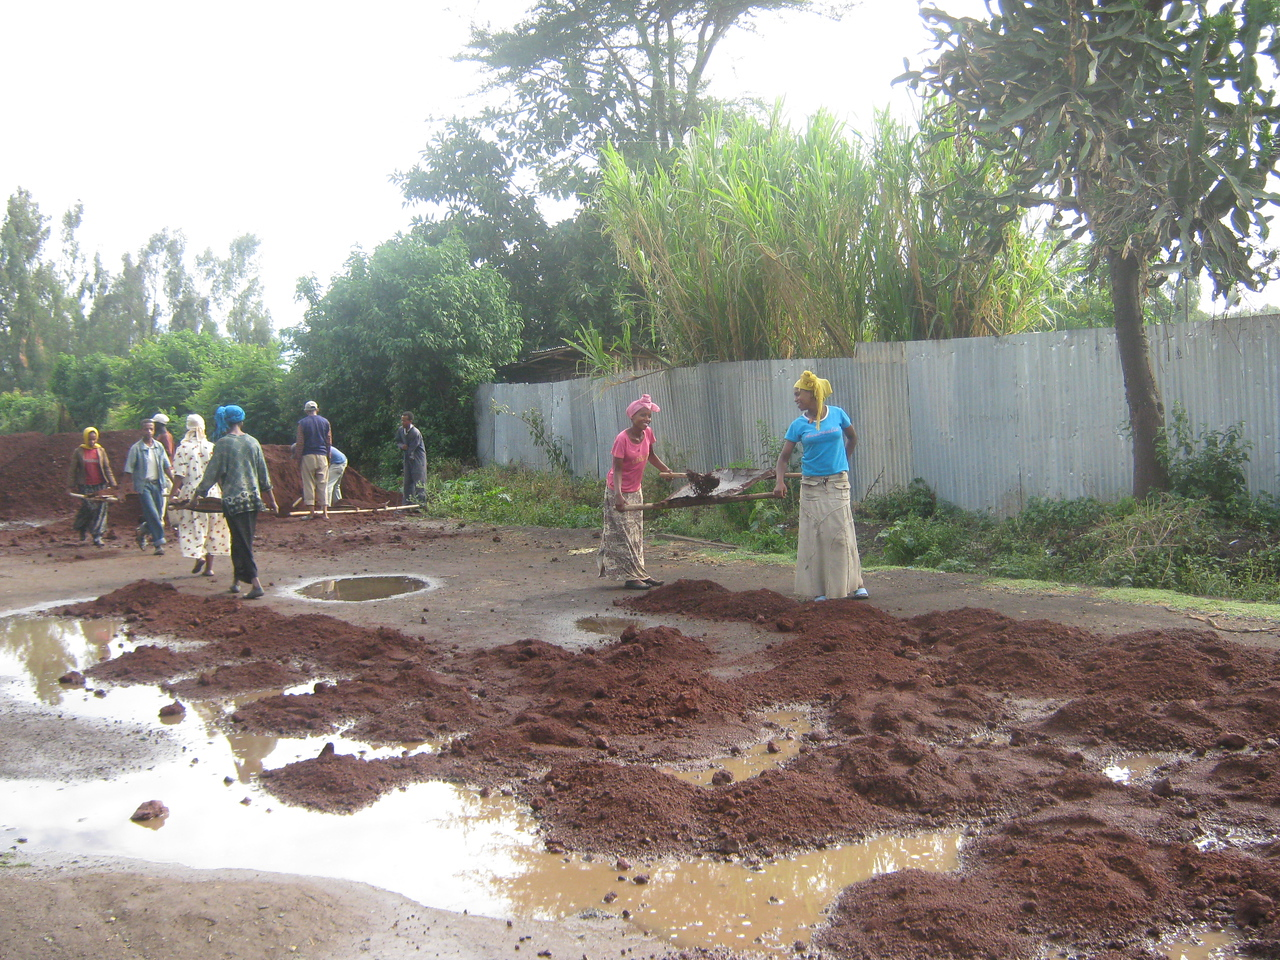 The local area - workers constructing a surfaced road.